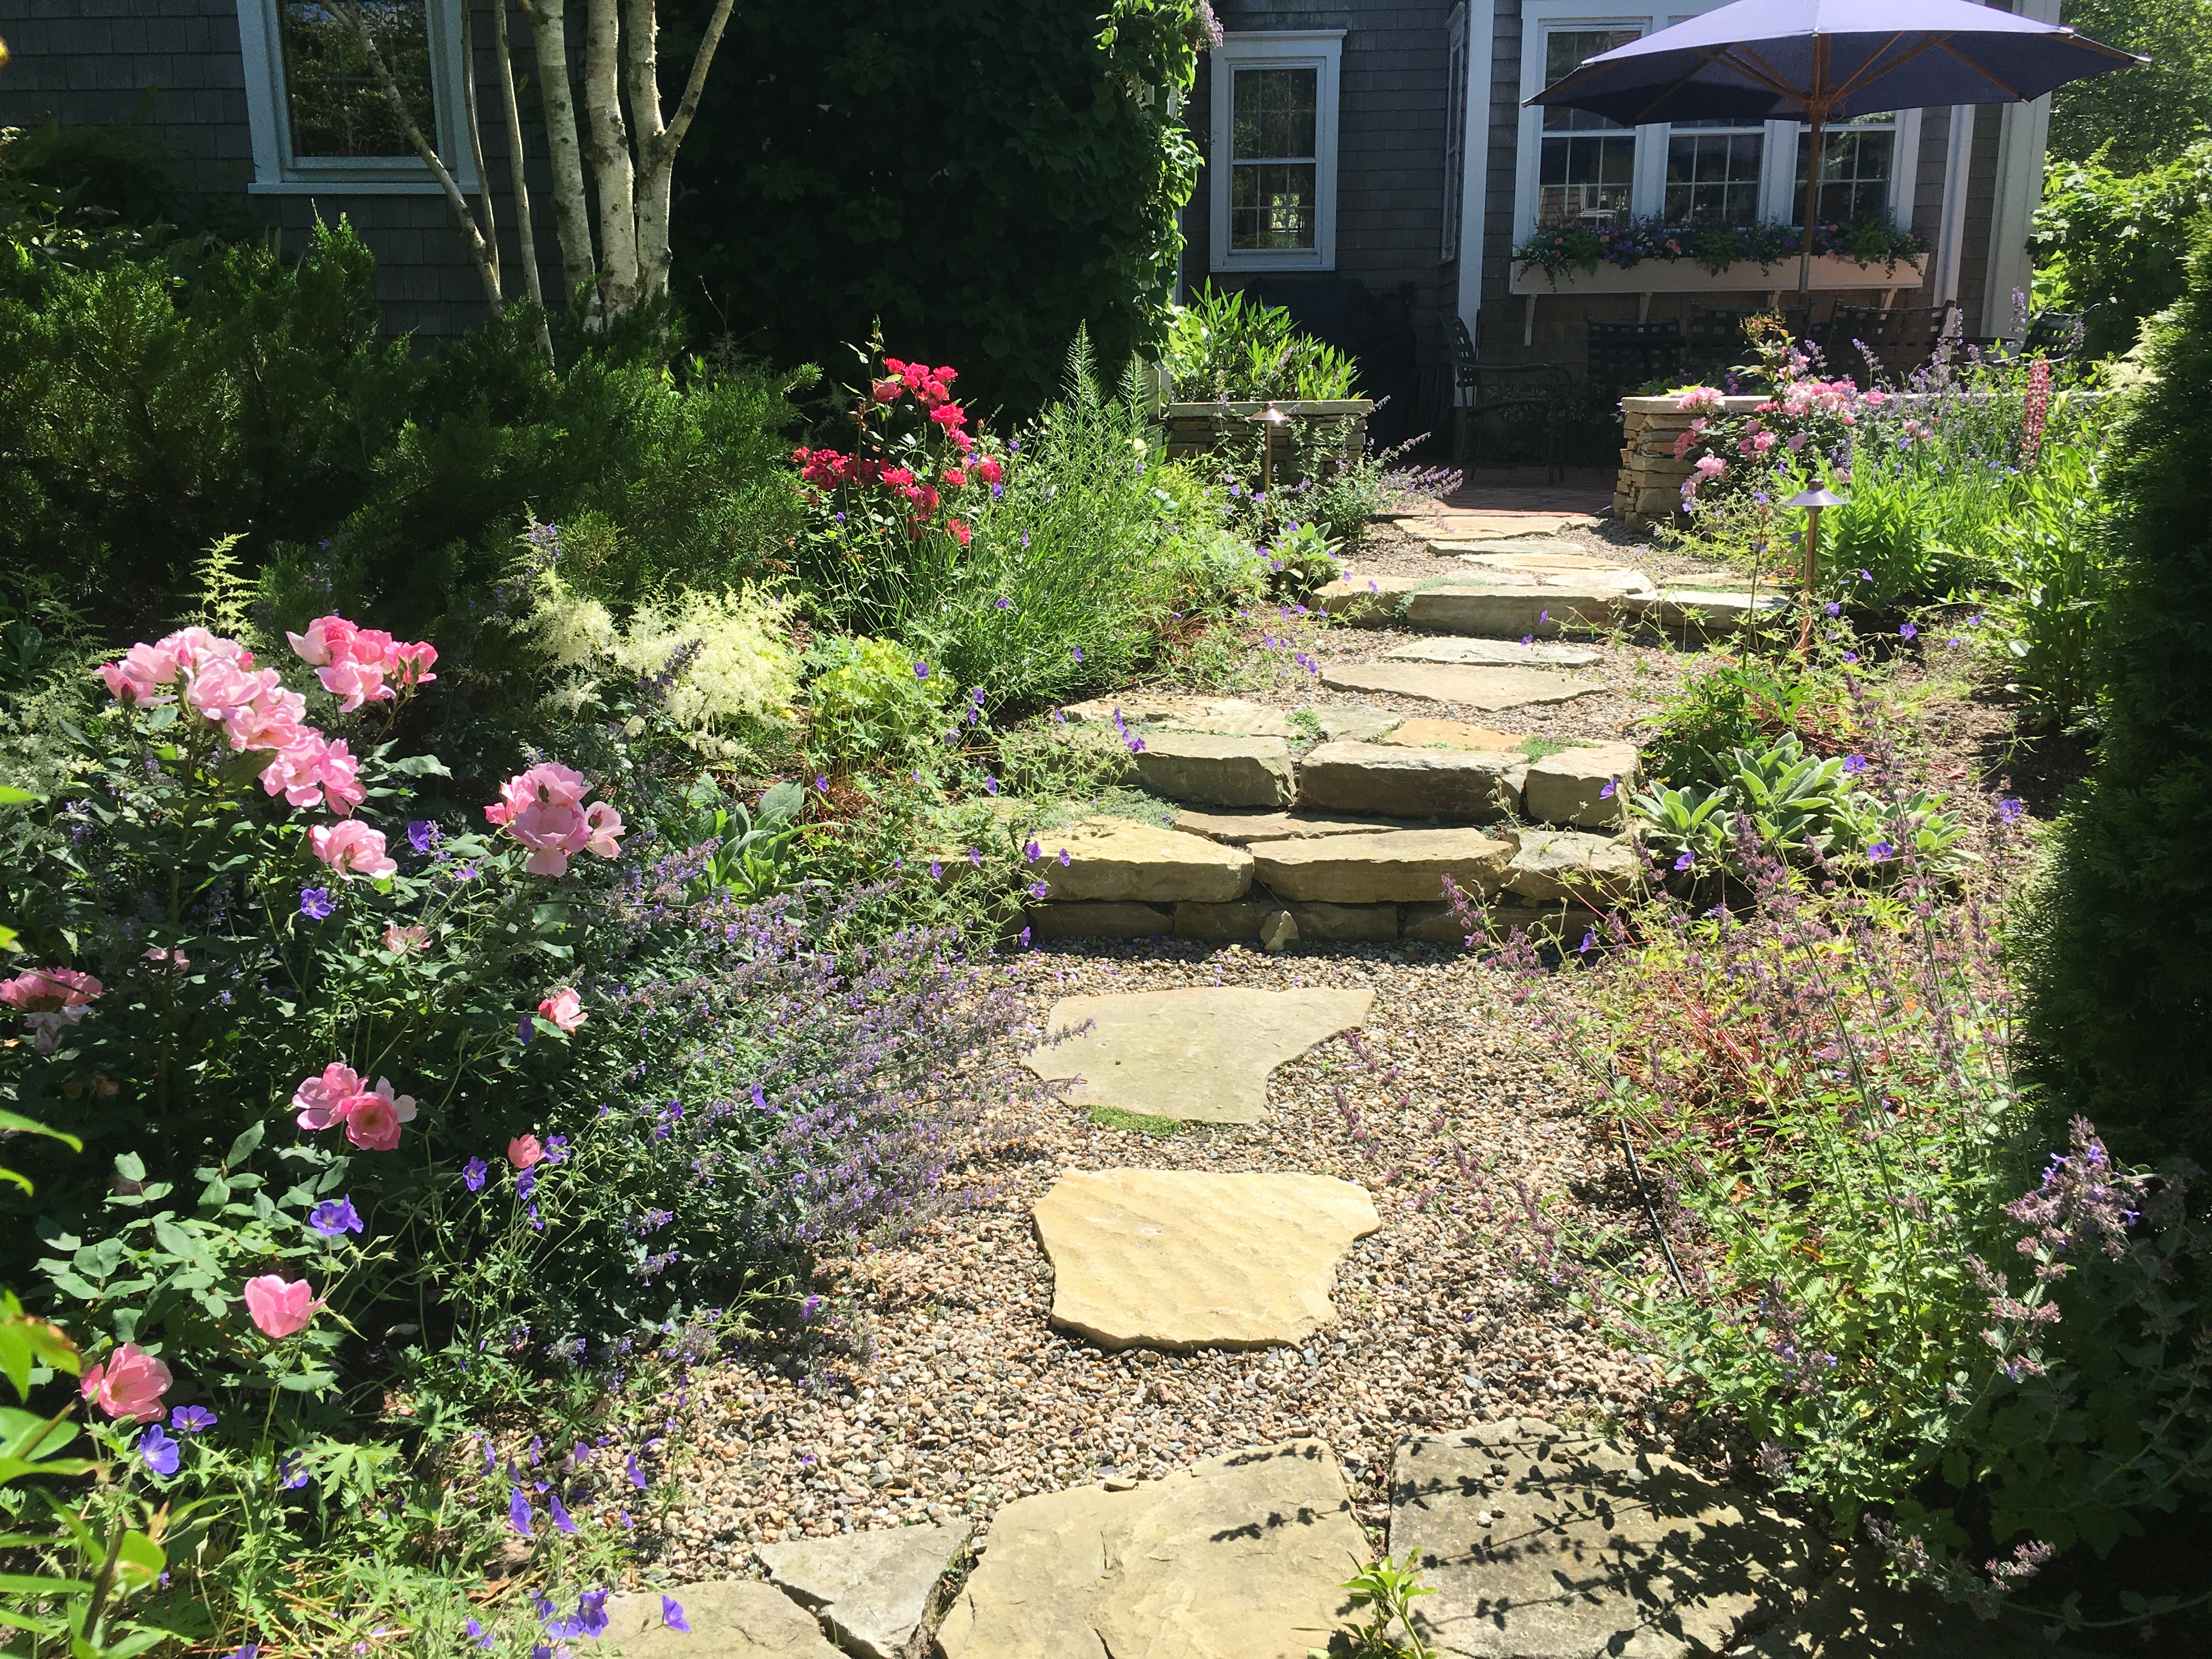 Flowers and hardscaping